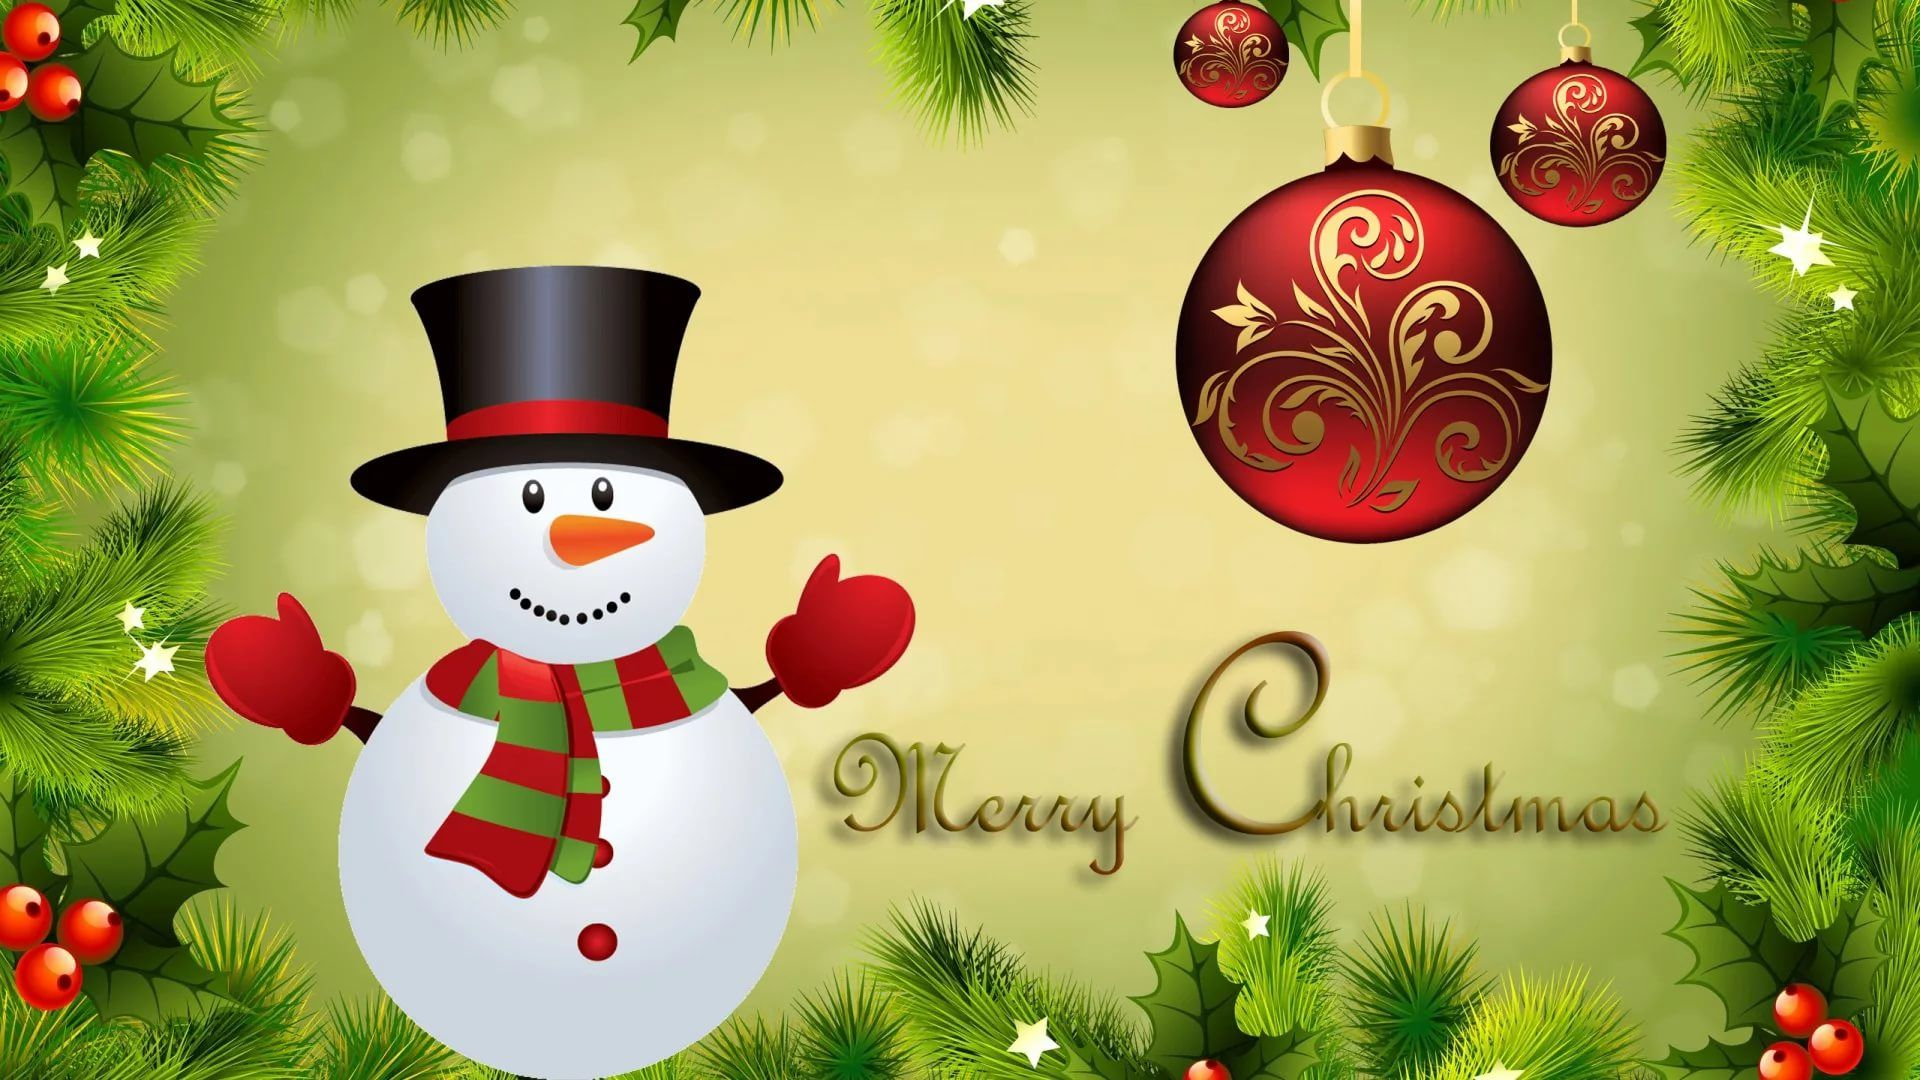 Merry Christmas PC Wallpaper